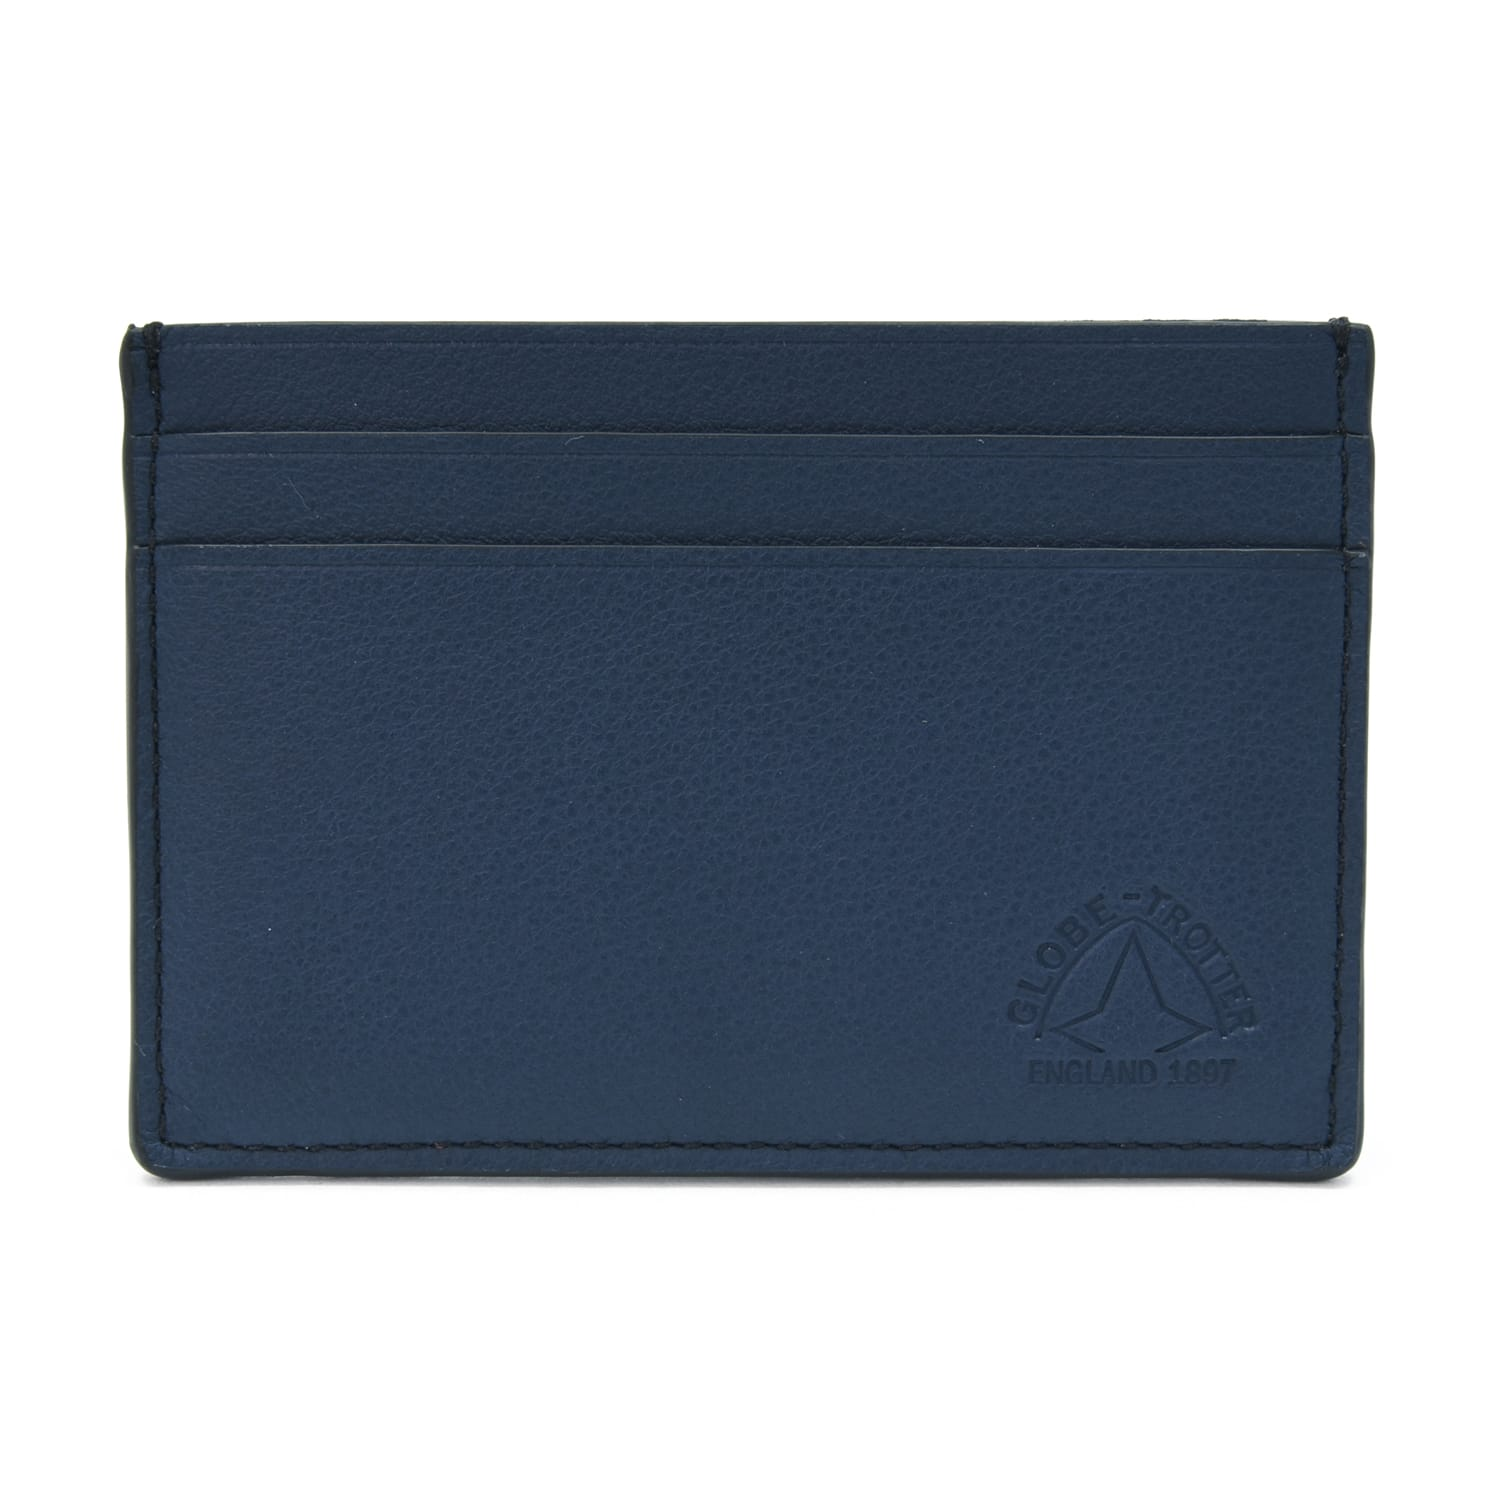 Centenary Leather · Credit Card Holder - Navy